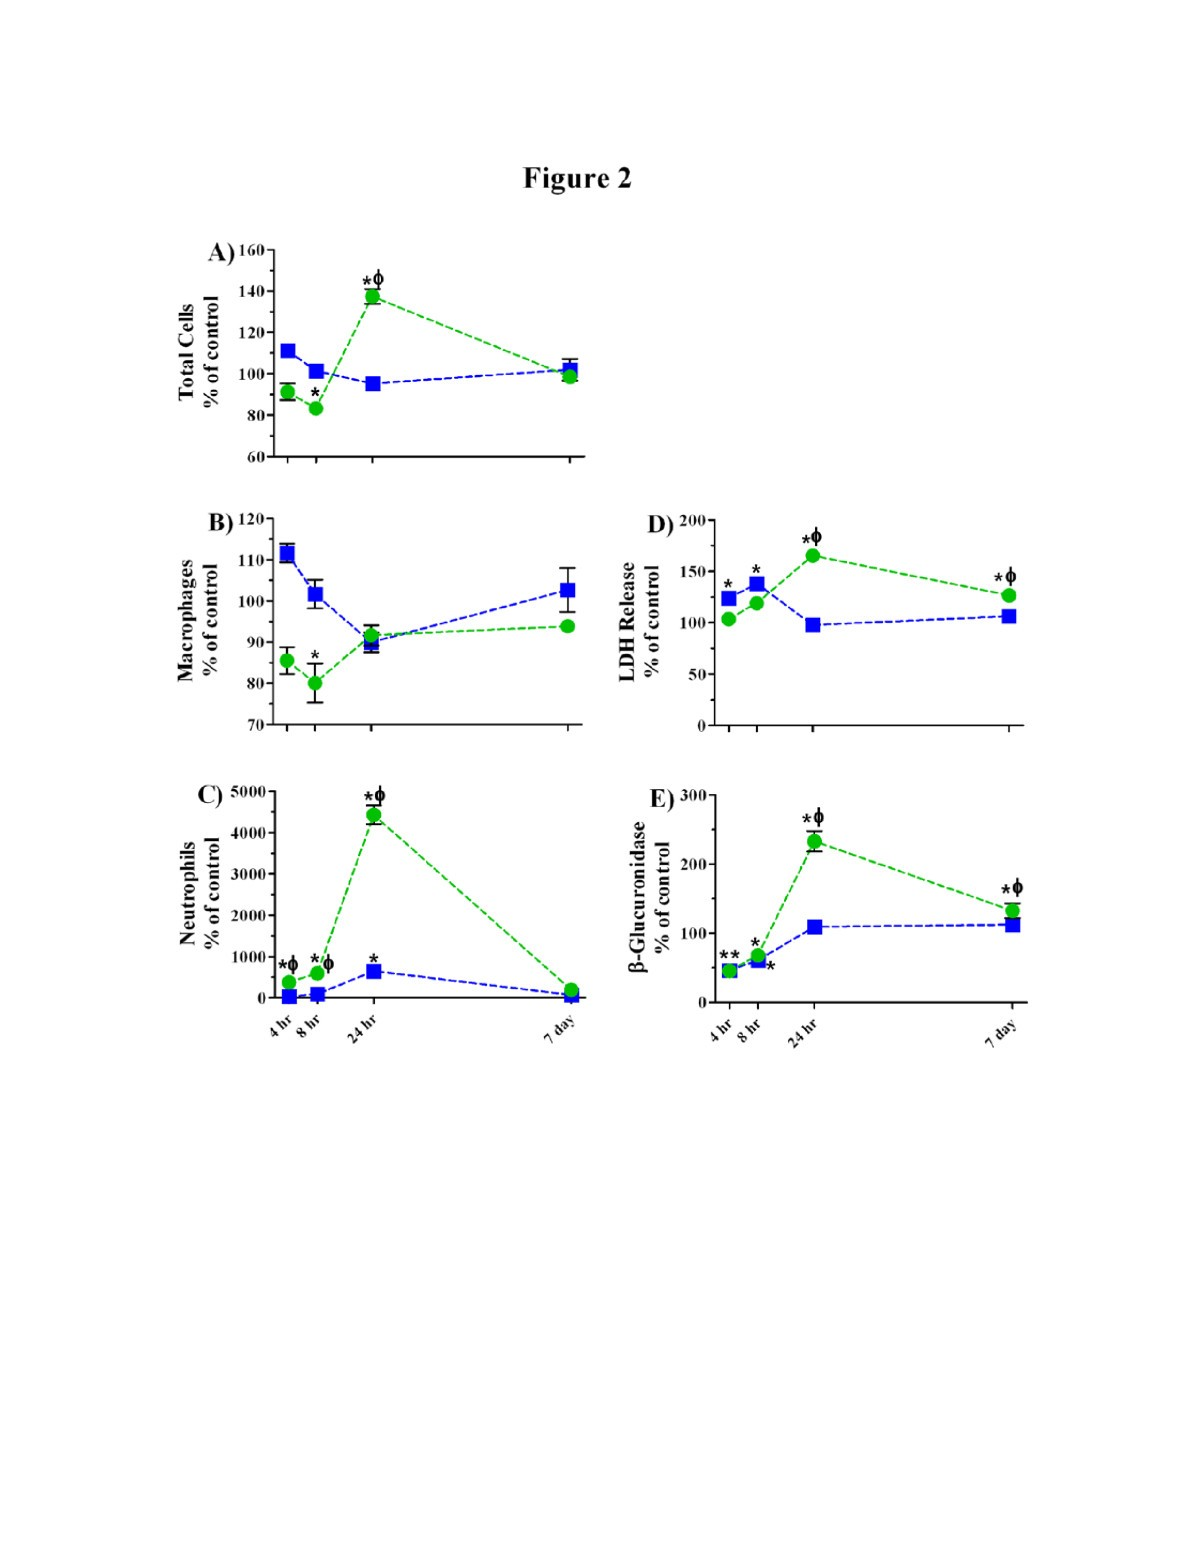 Equivalent Titanium Dioxide Nanoparticle Deposition By Intratracheal 134 F Head Engine Diagram Instillation And Whole Body Inhalation The Effect Of Dose Rate On Acute Respiratory